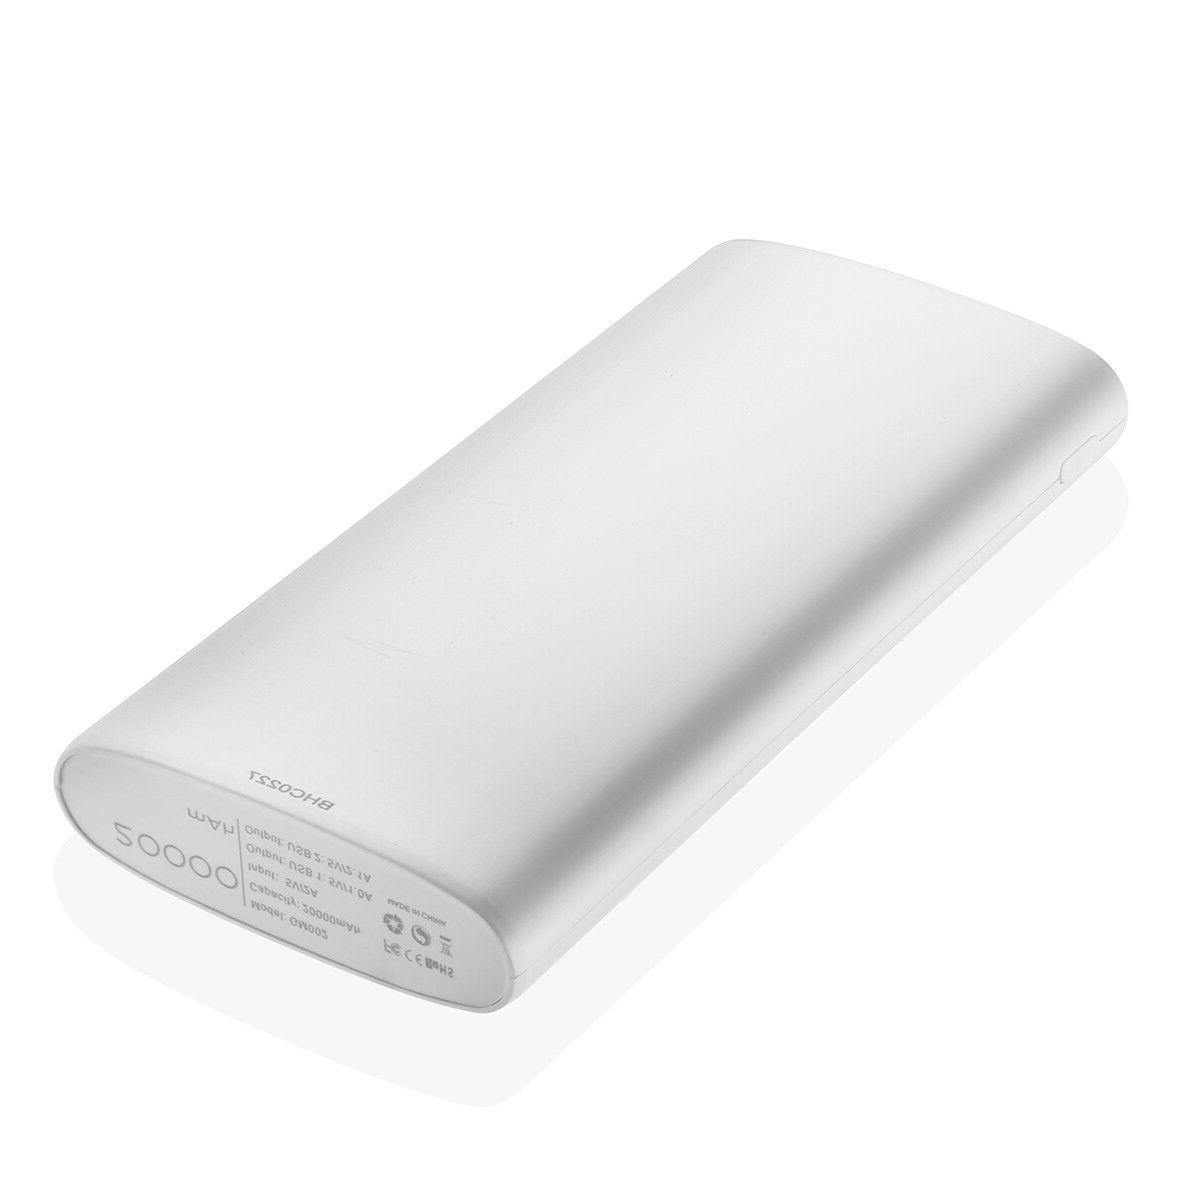 Aibocn Power Bank Dual Portable Cell Phone Torch